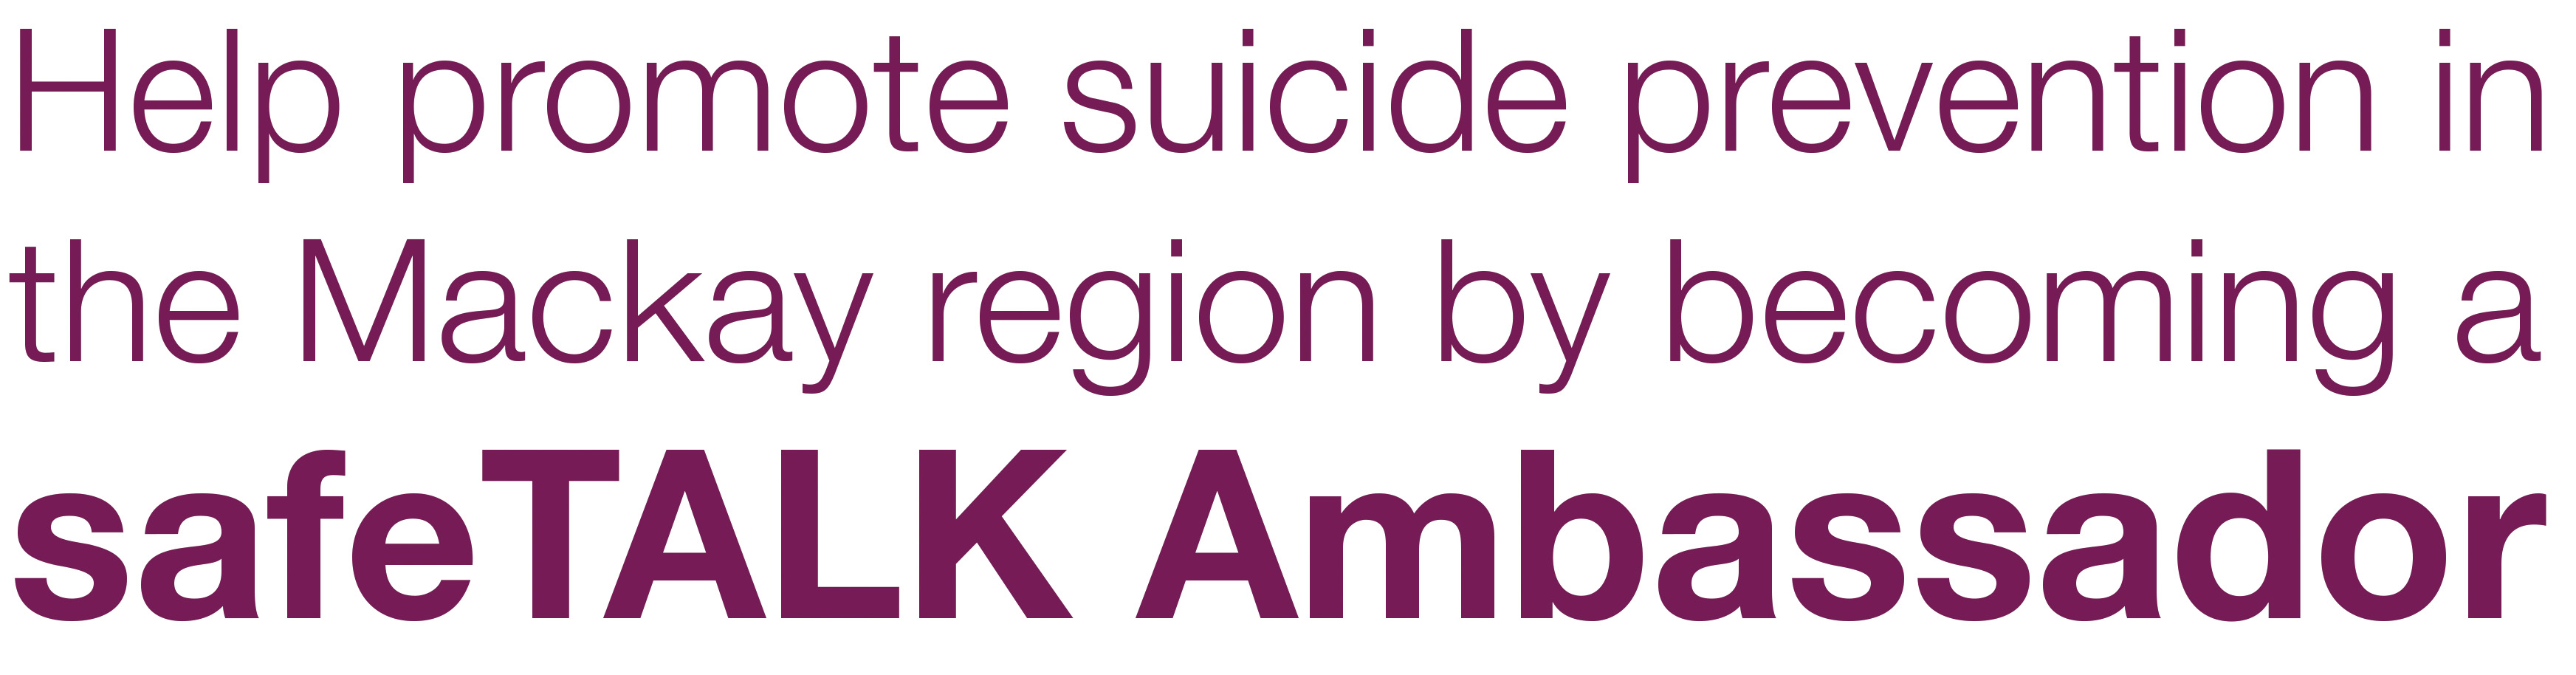 suicide prevention mackay